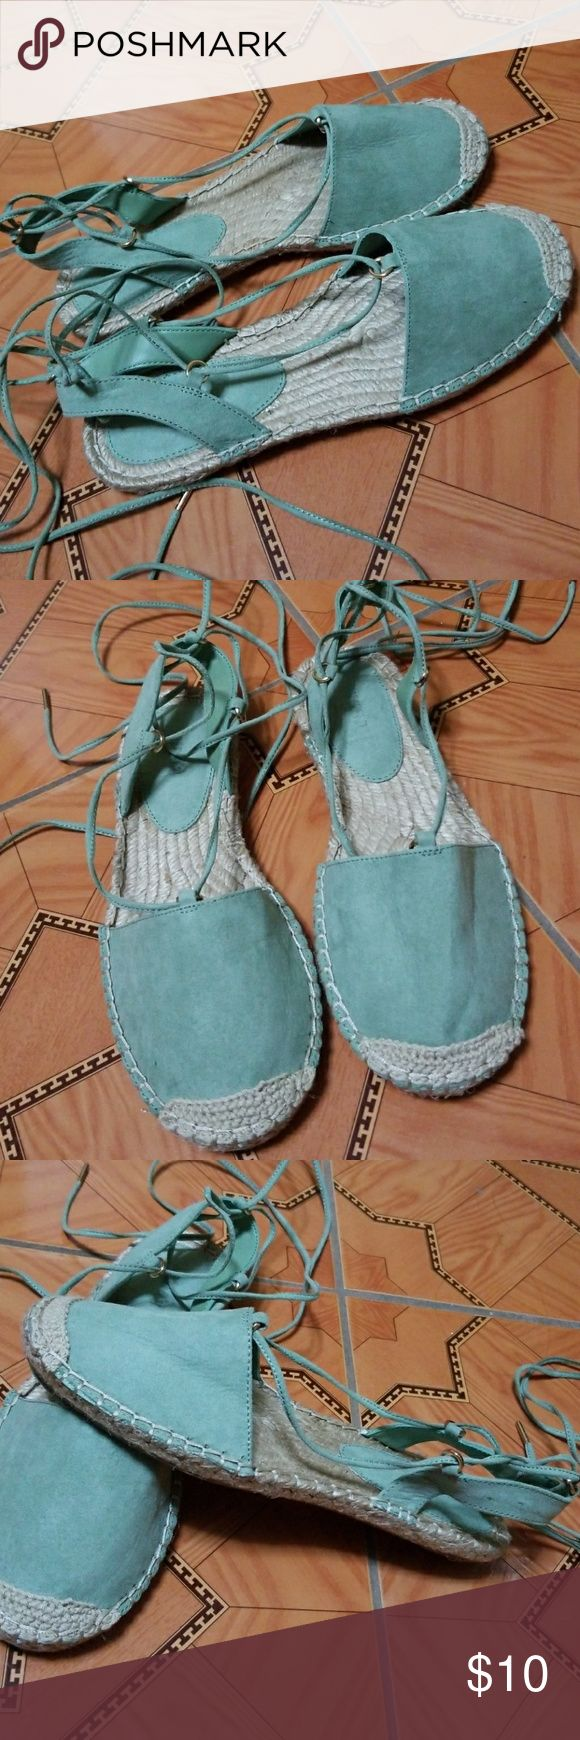 OLIVE GREEN ESPADRILLE SANDLES NEVER WORN. Espadrille style sandal. Tie up around the ankle. Up to offers :) Forever 21 Shoes Sandals